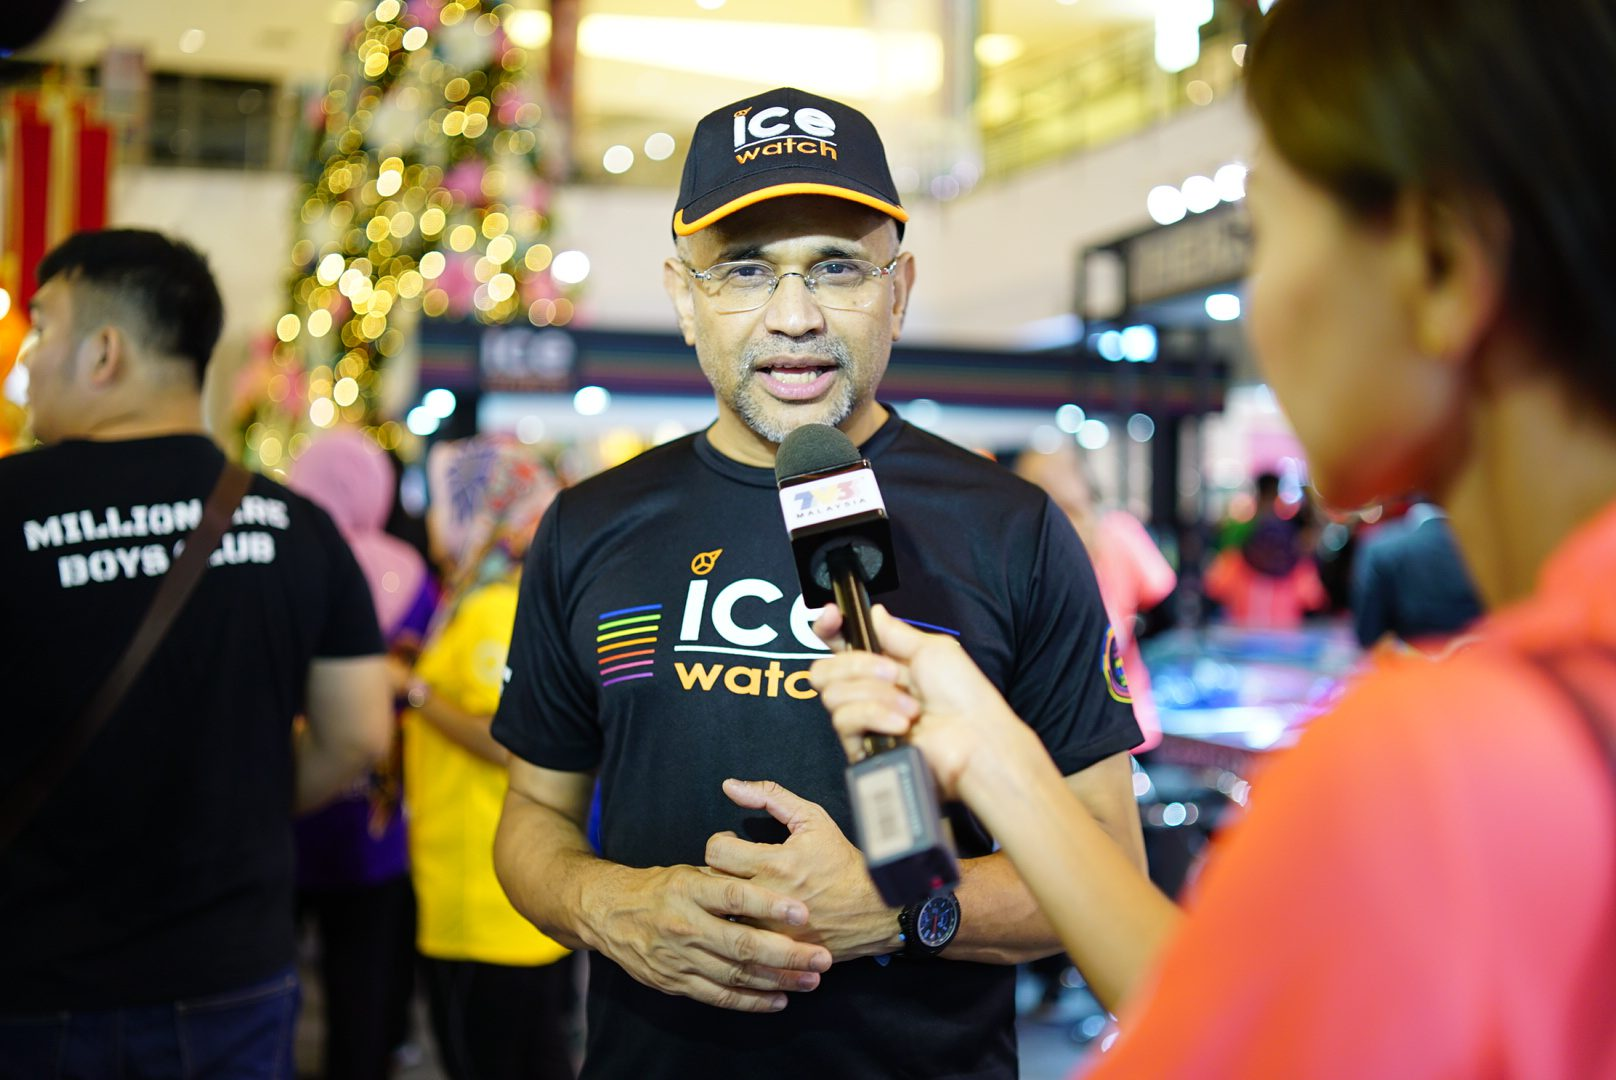 #video : Ice-Watch Light Up the Night Run 2018